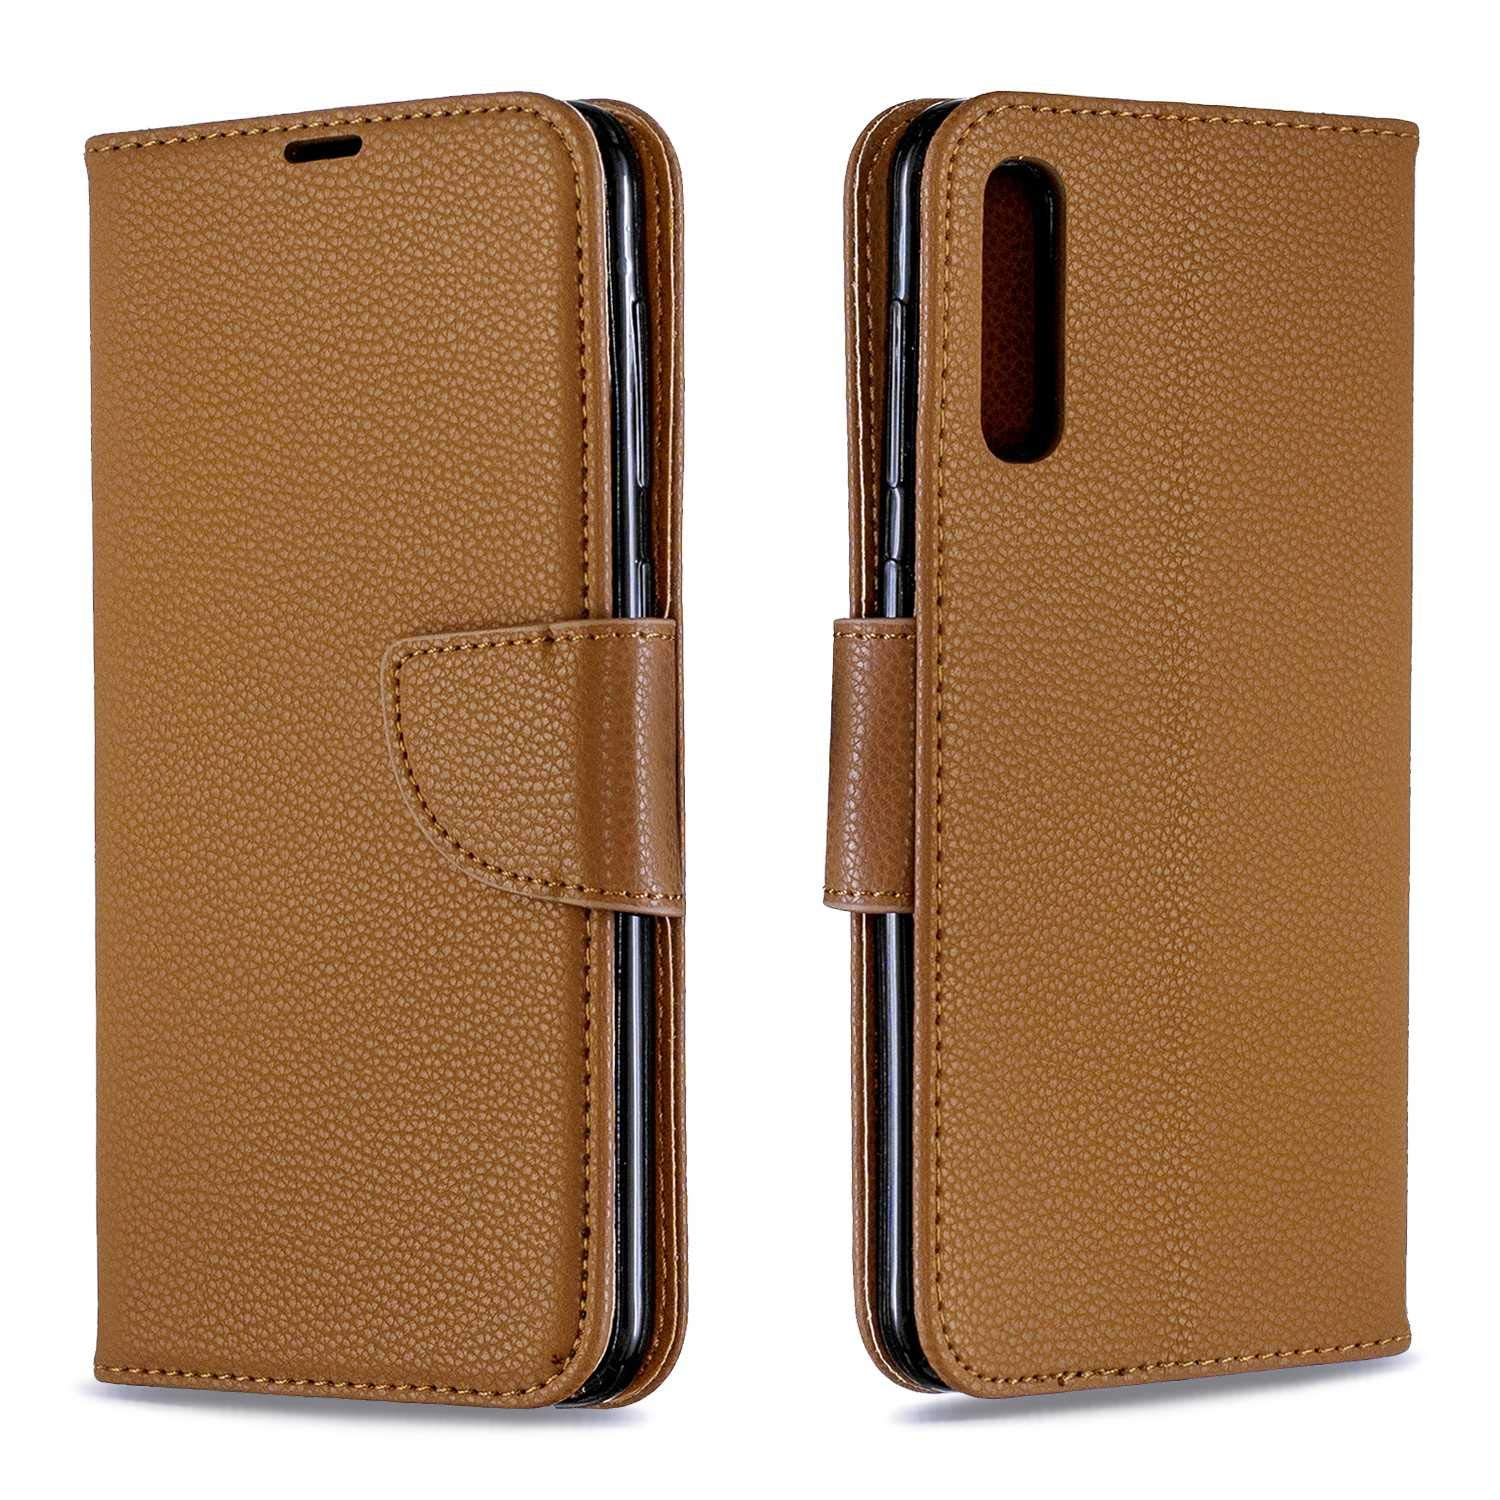 Galaxy A50 Case, Bear Village Premium PU Wallet Protective Case with Kickstand Function, Wrist Strap and Card Slots for Samsung Galaxy A50, Brown by Bear Village